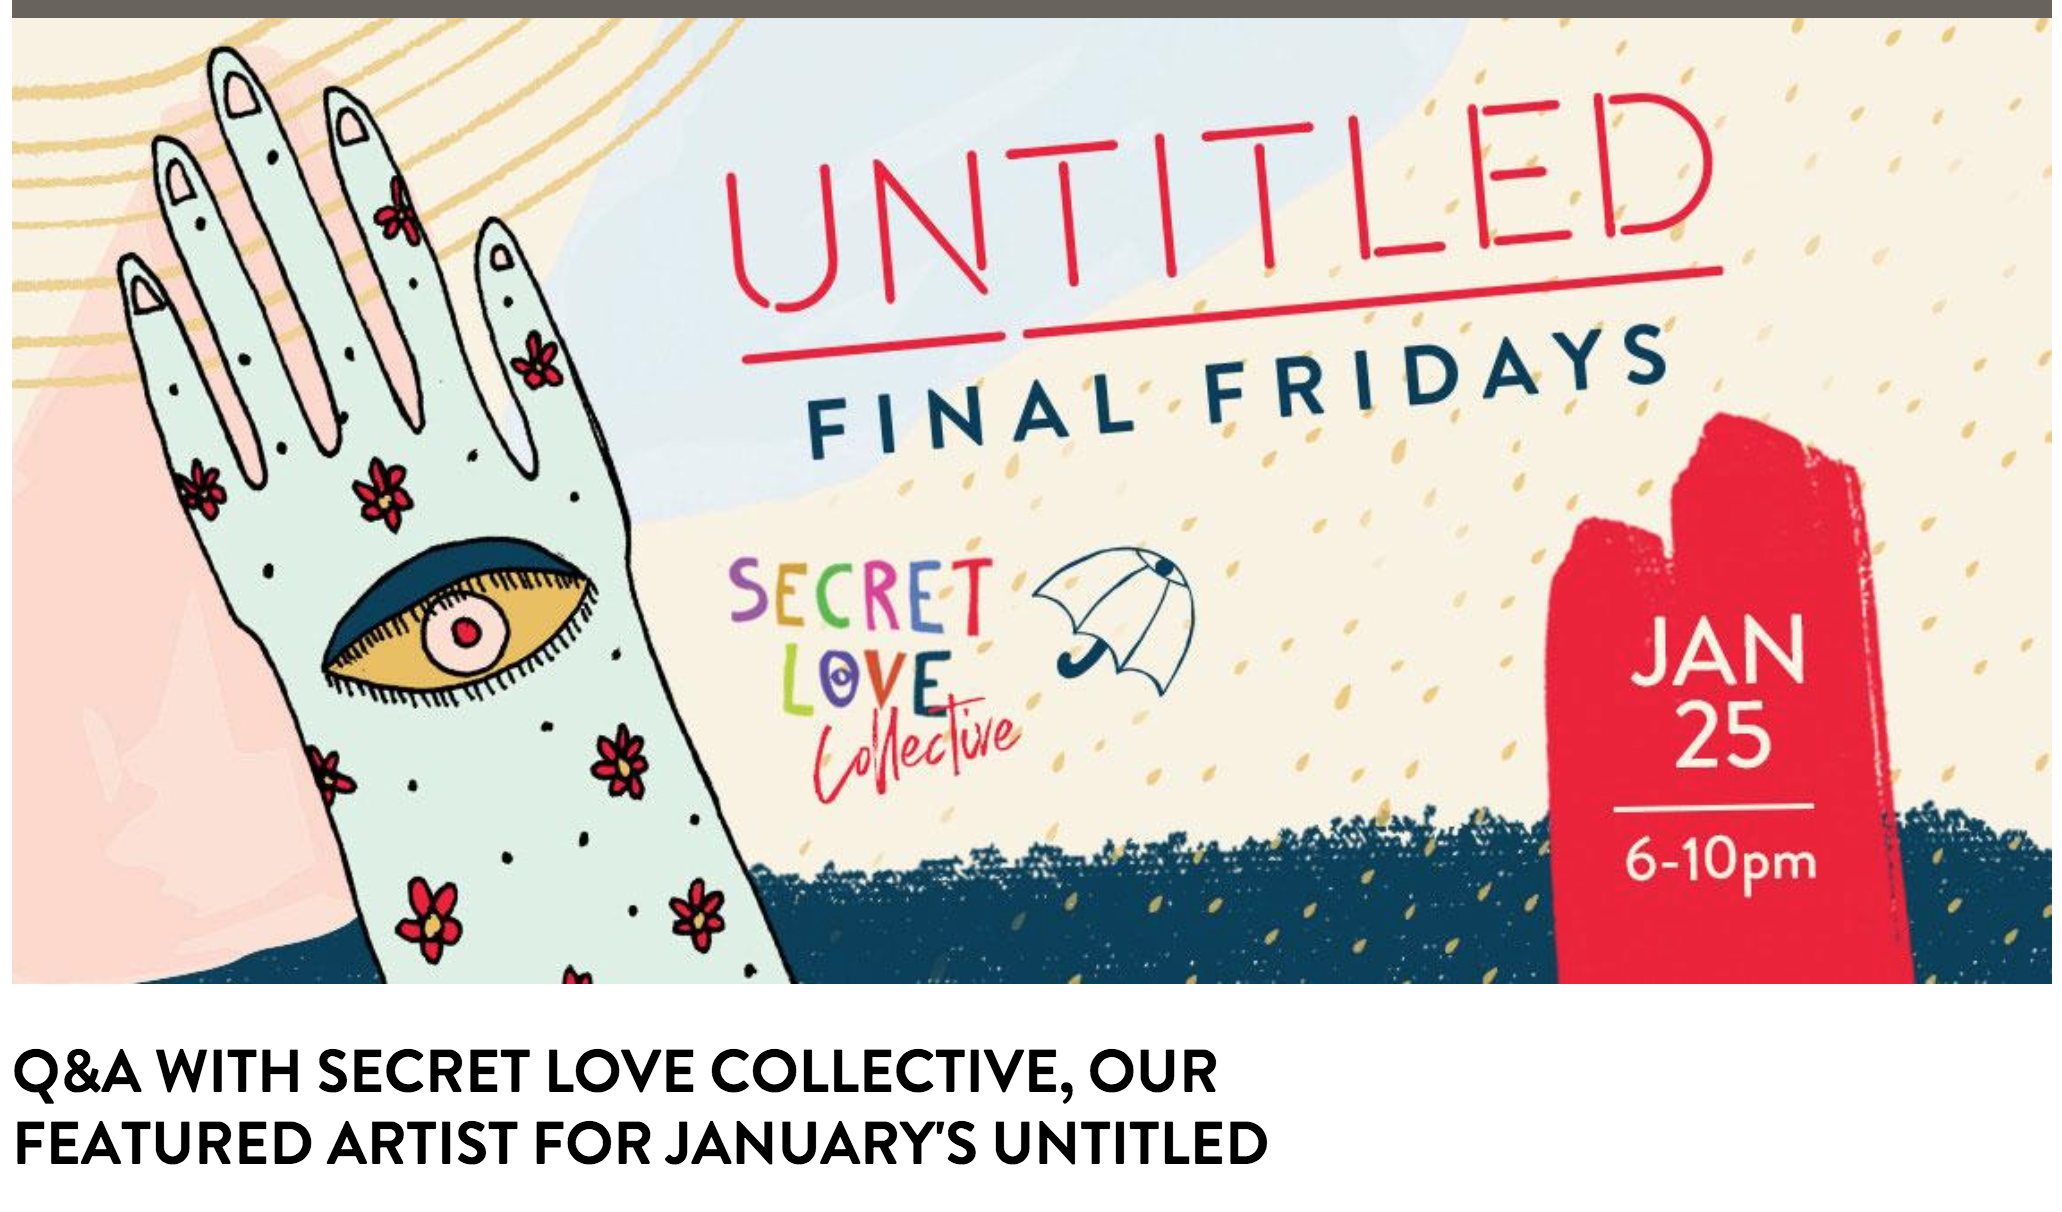 Q&A with Secret Love Collective, Our Featured Artist for January's Untitled  - https://denverartmuseum.org/article/q-and-secret-love-collective-our-featured-artist-januarys-untitled